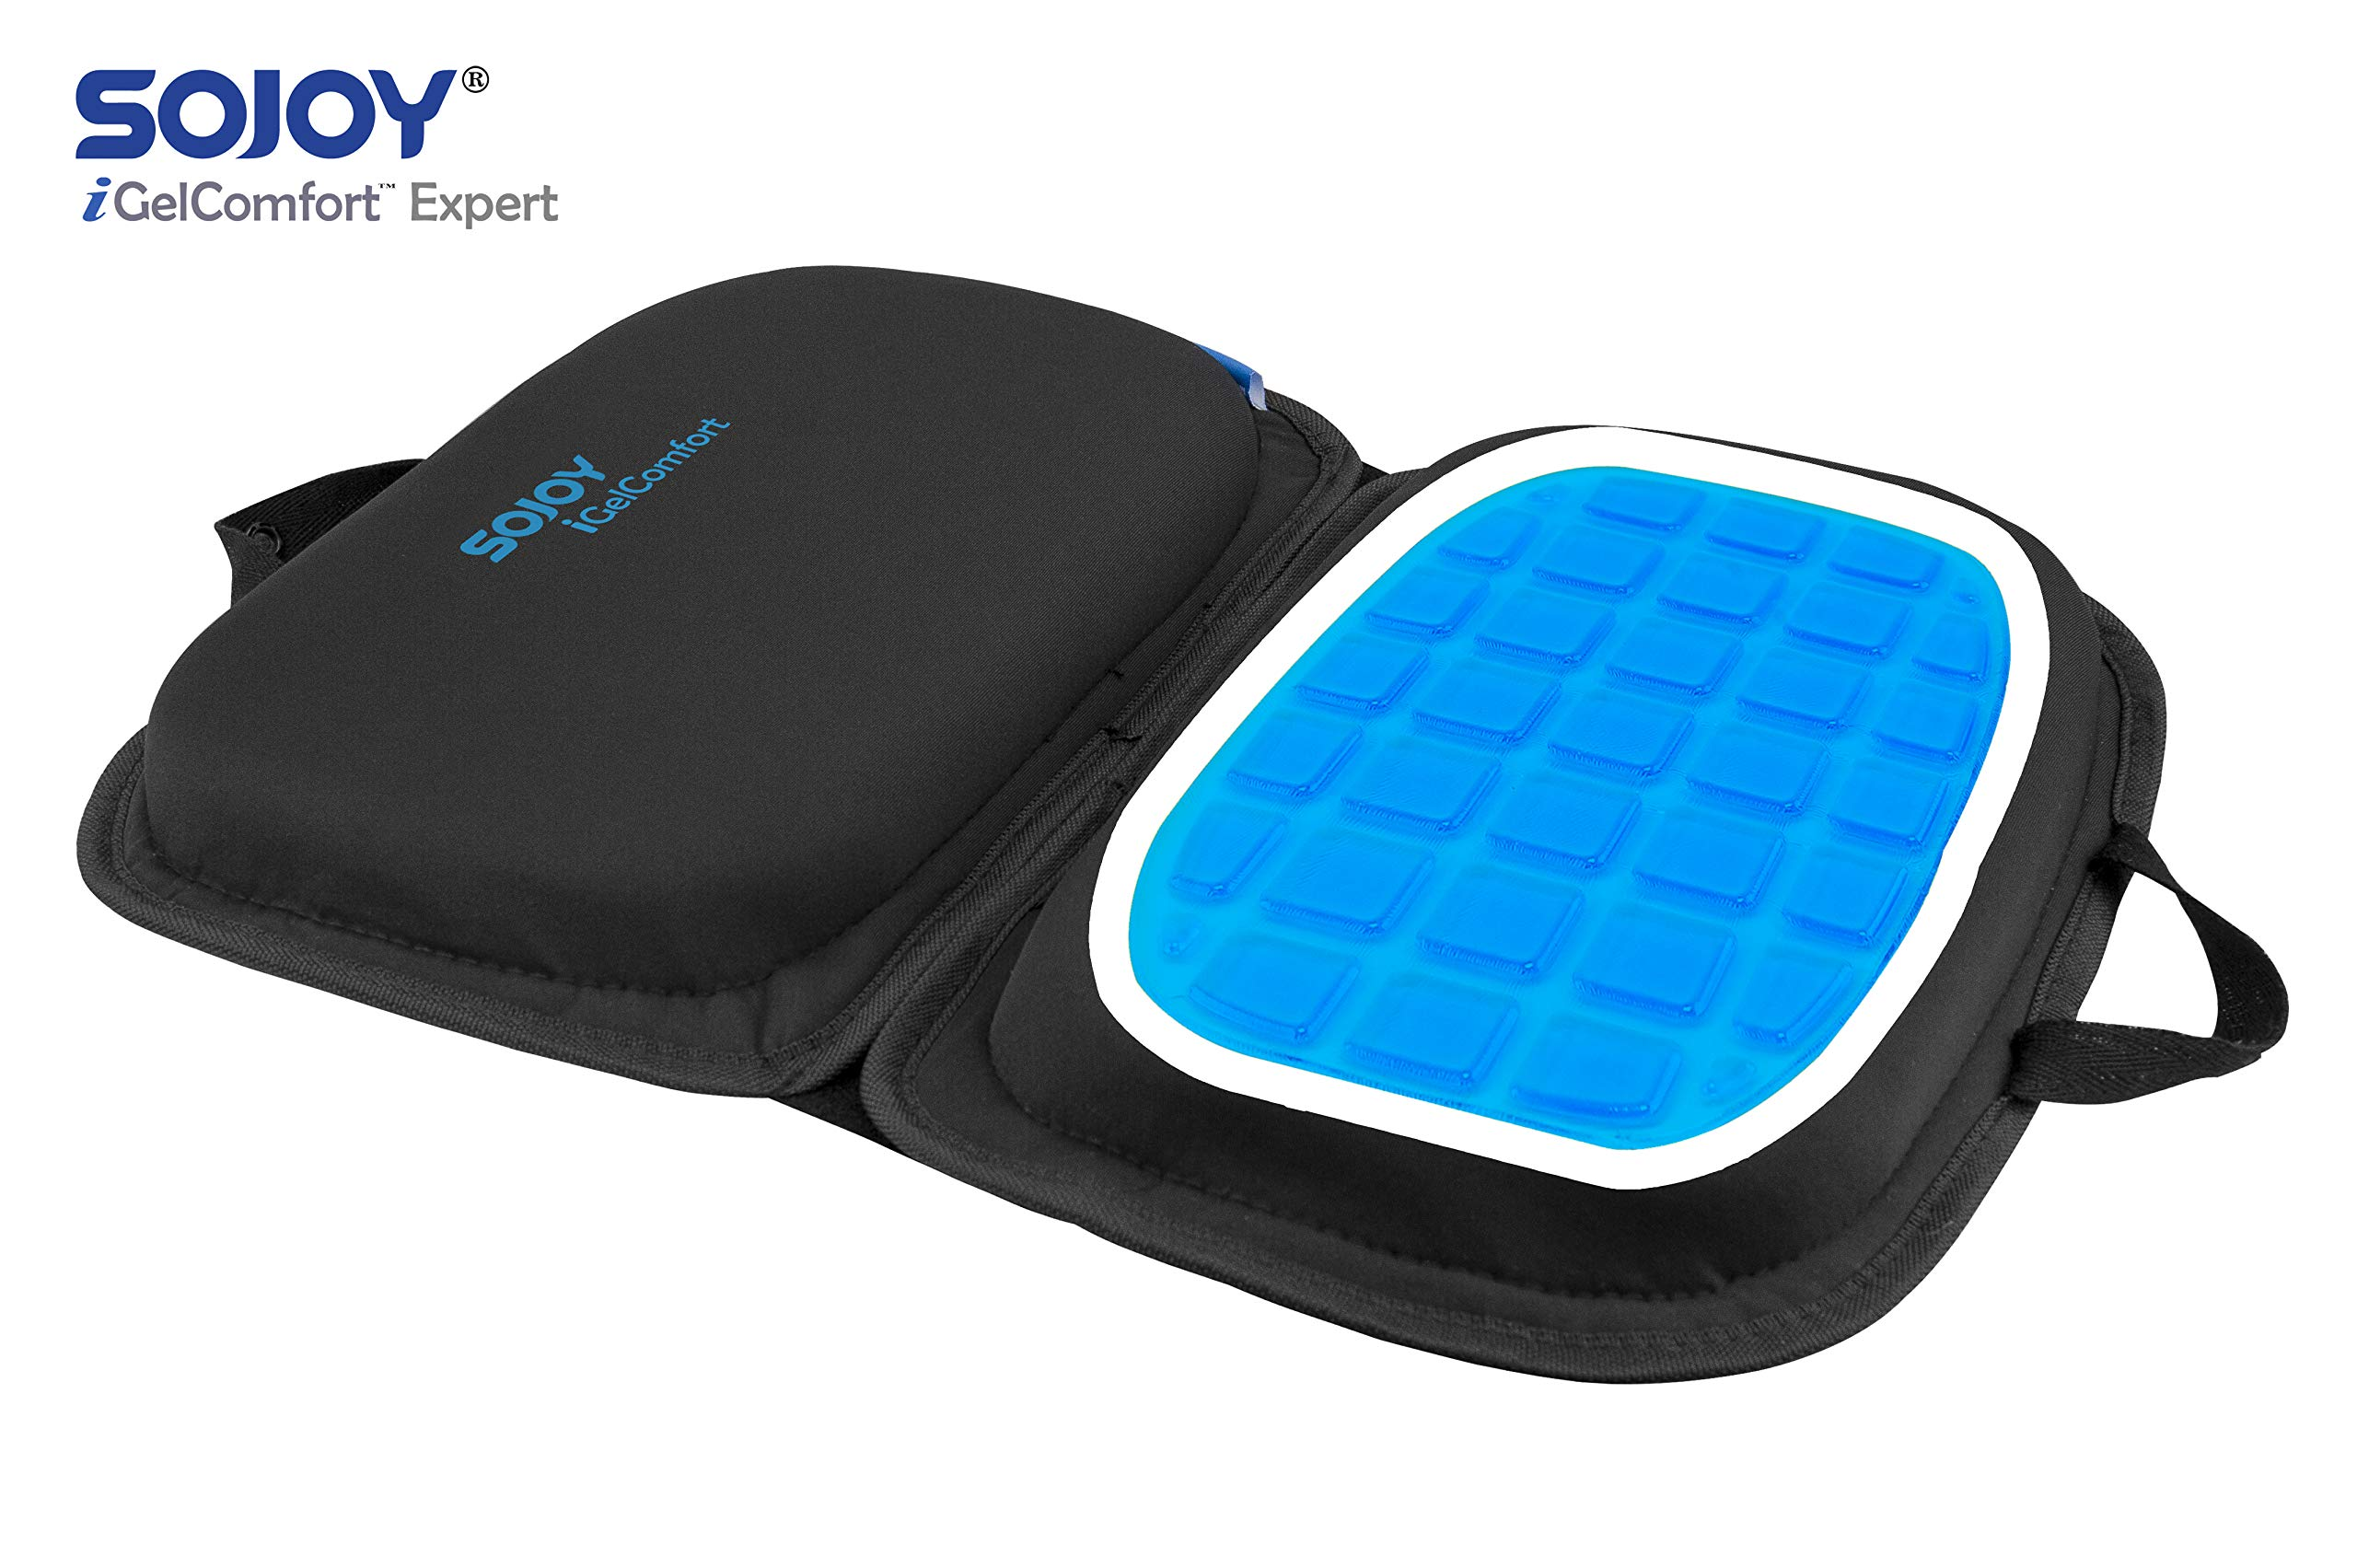 Sojoy iGelComfort 3 in 1 Foldable Gel Seat Cushion Featured with Memory Foam (A Must-Have Travel Cushion! Smart, Easy Travel Cushion) (Size: 18.5'' x 15'' x 2'') by Sojoy